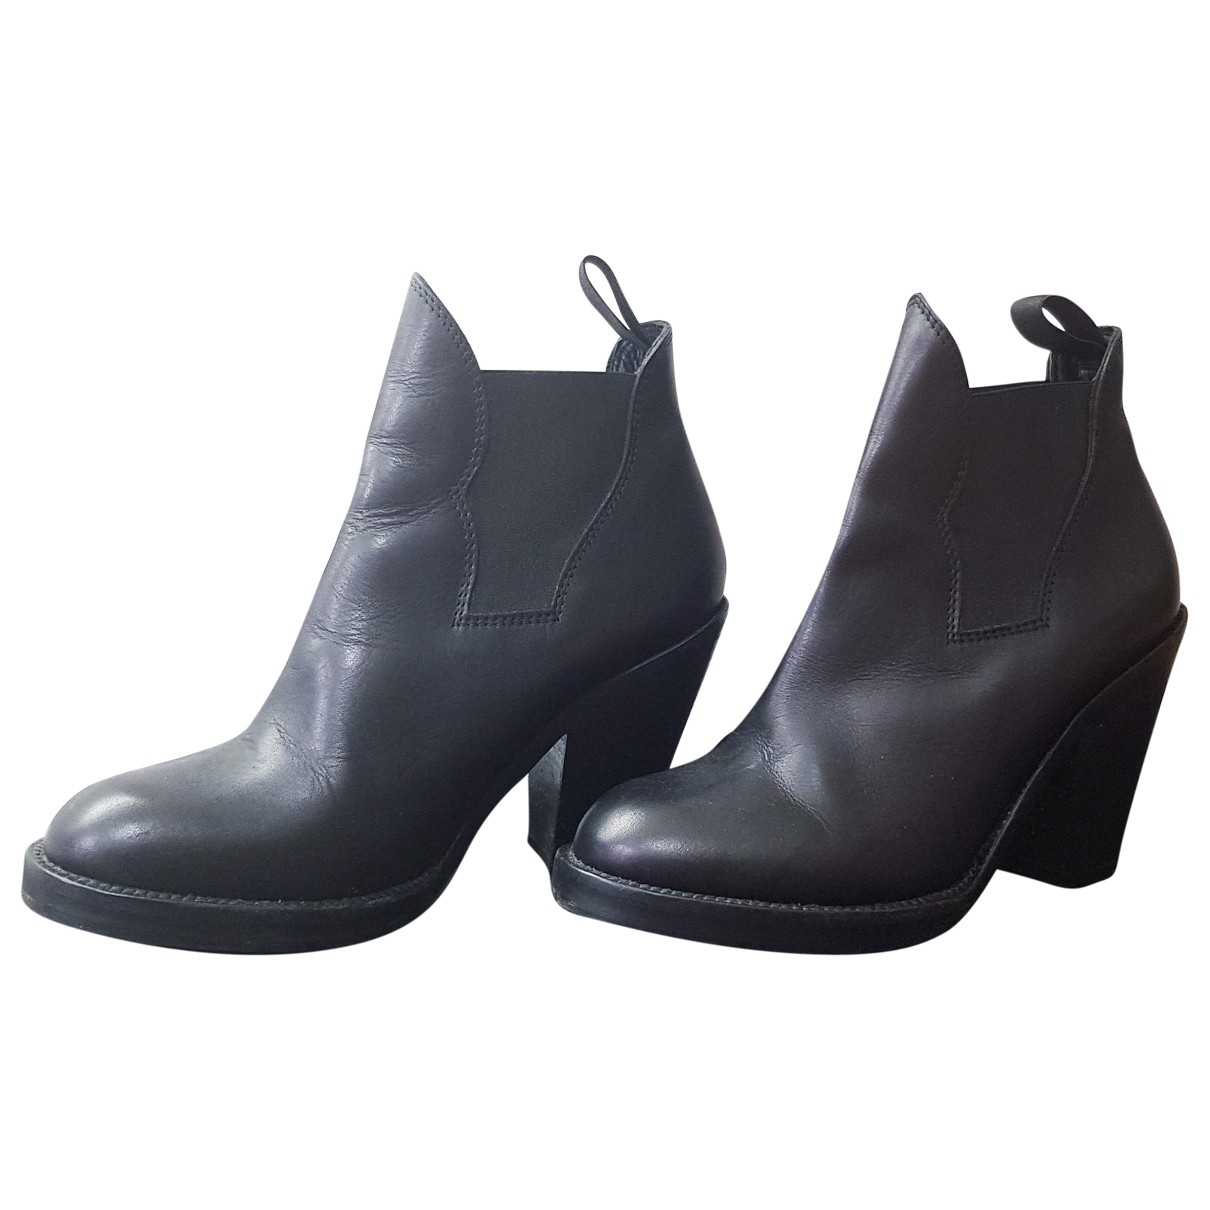 Acne Studios Star Black Leather Ankle boots for Women 38 EU